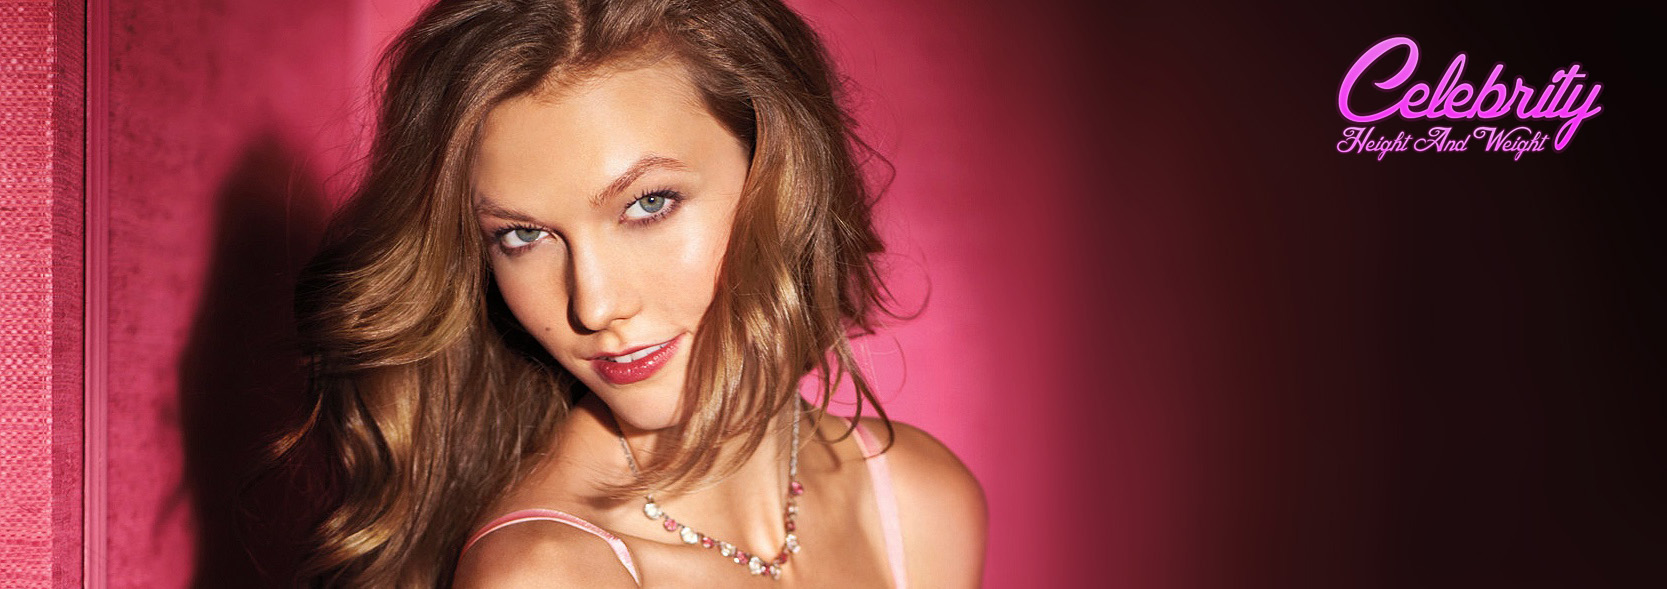 Karlie Kloss Measurements Height and Weight